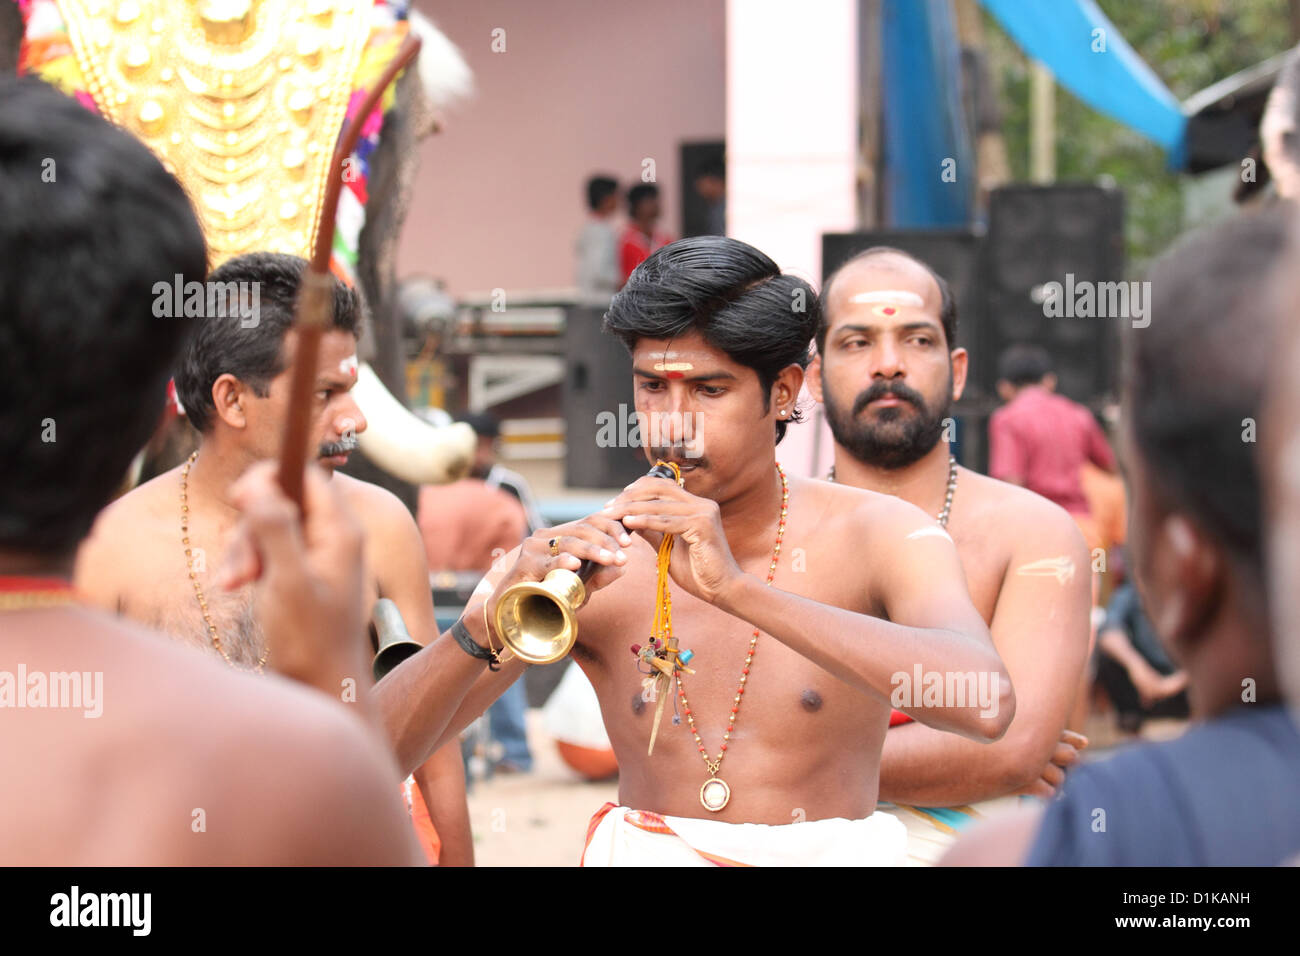 Musicians at the pooram festival. - Stock Image